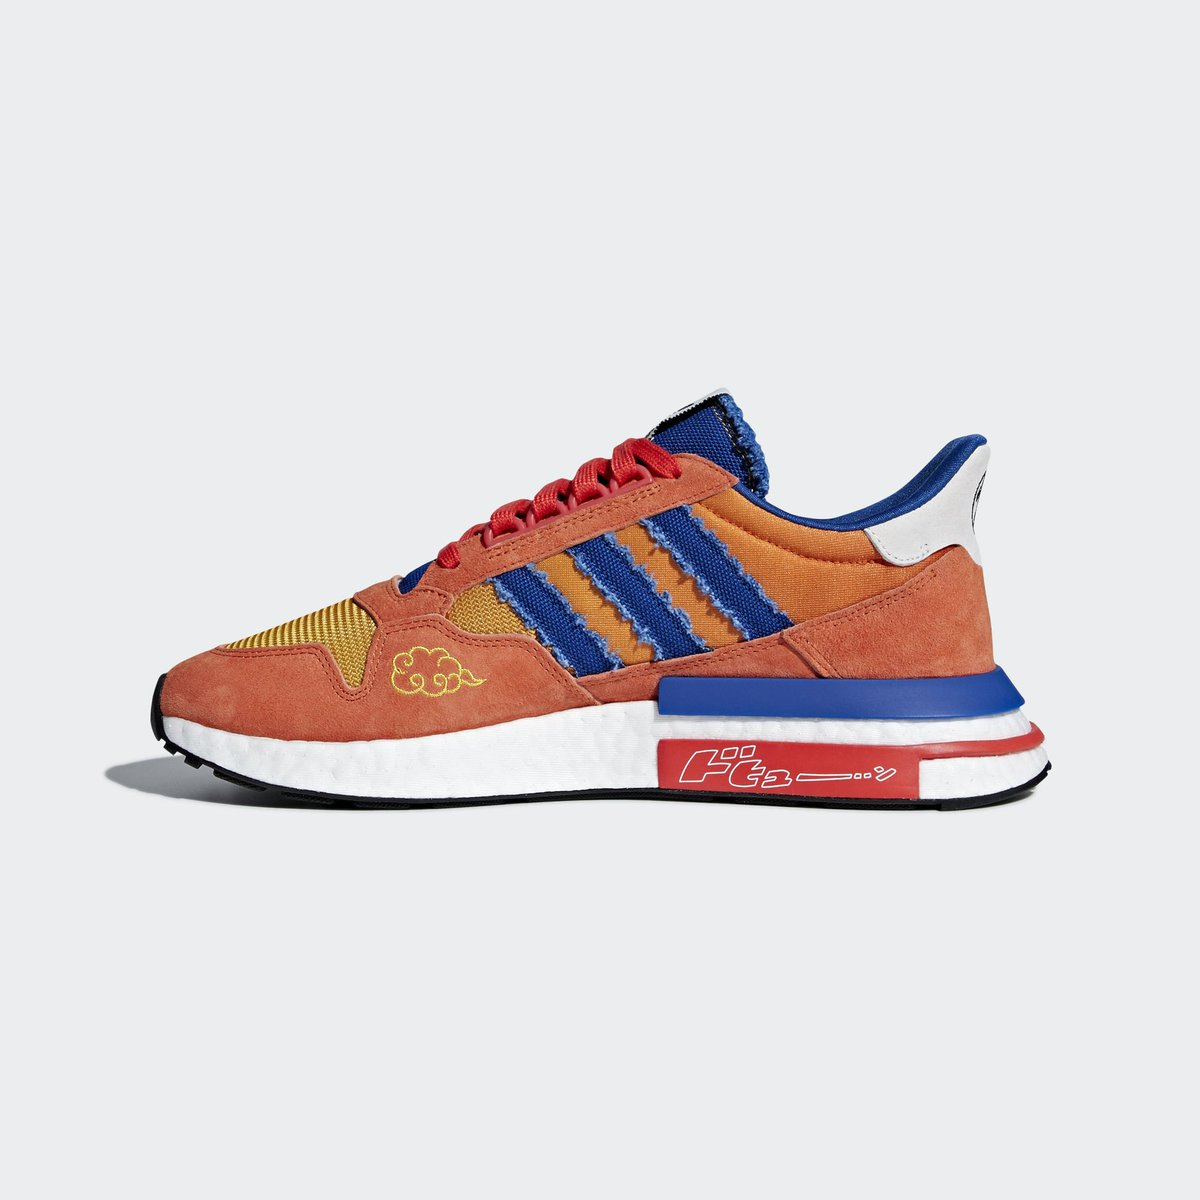 67581427f92a1e Official adidas images of the Dragon Ball Z x adidas ZX 500 RM Boost